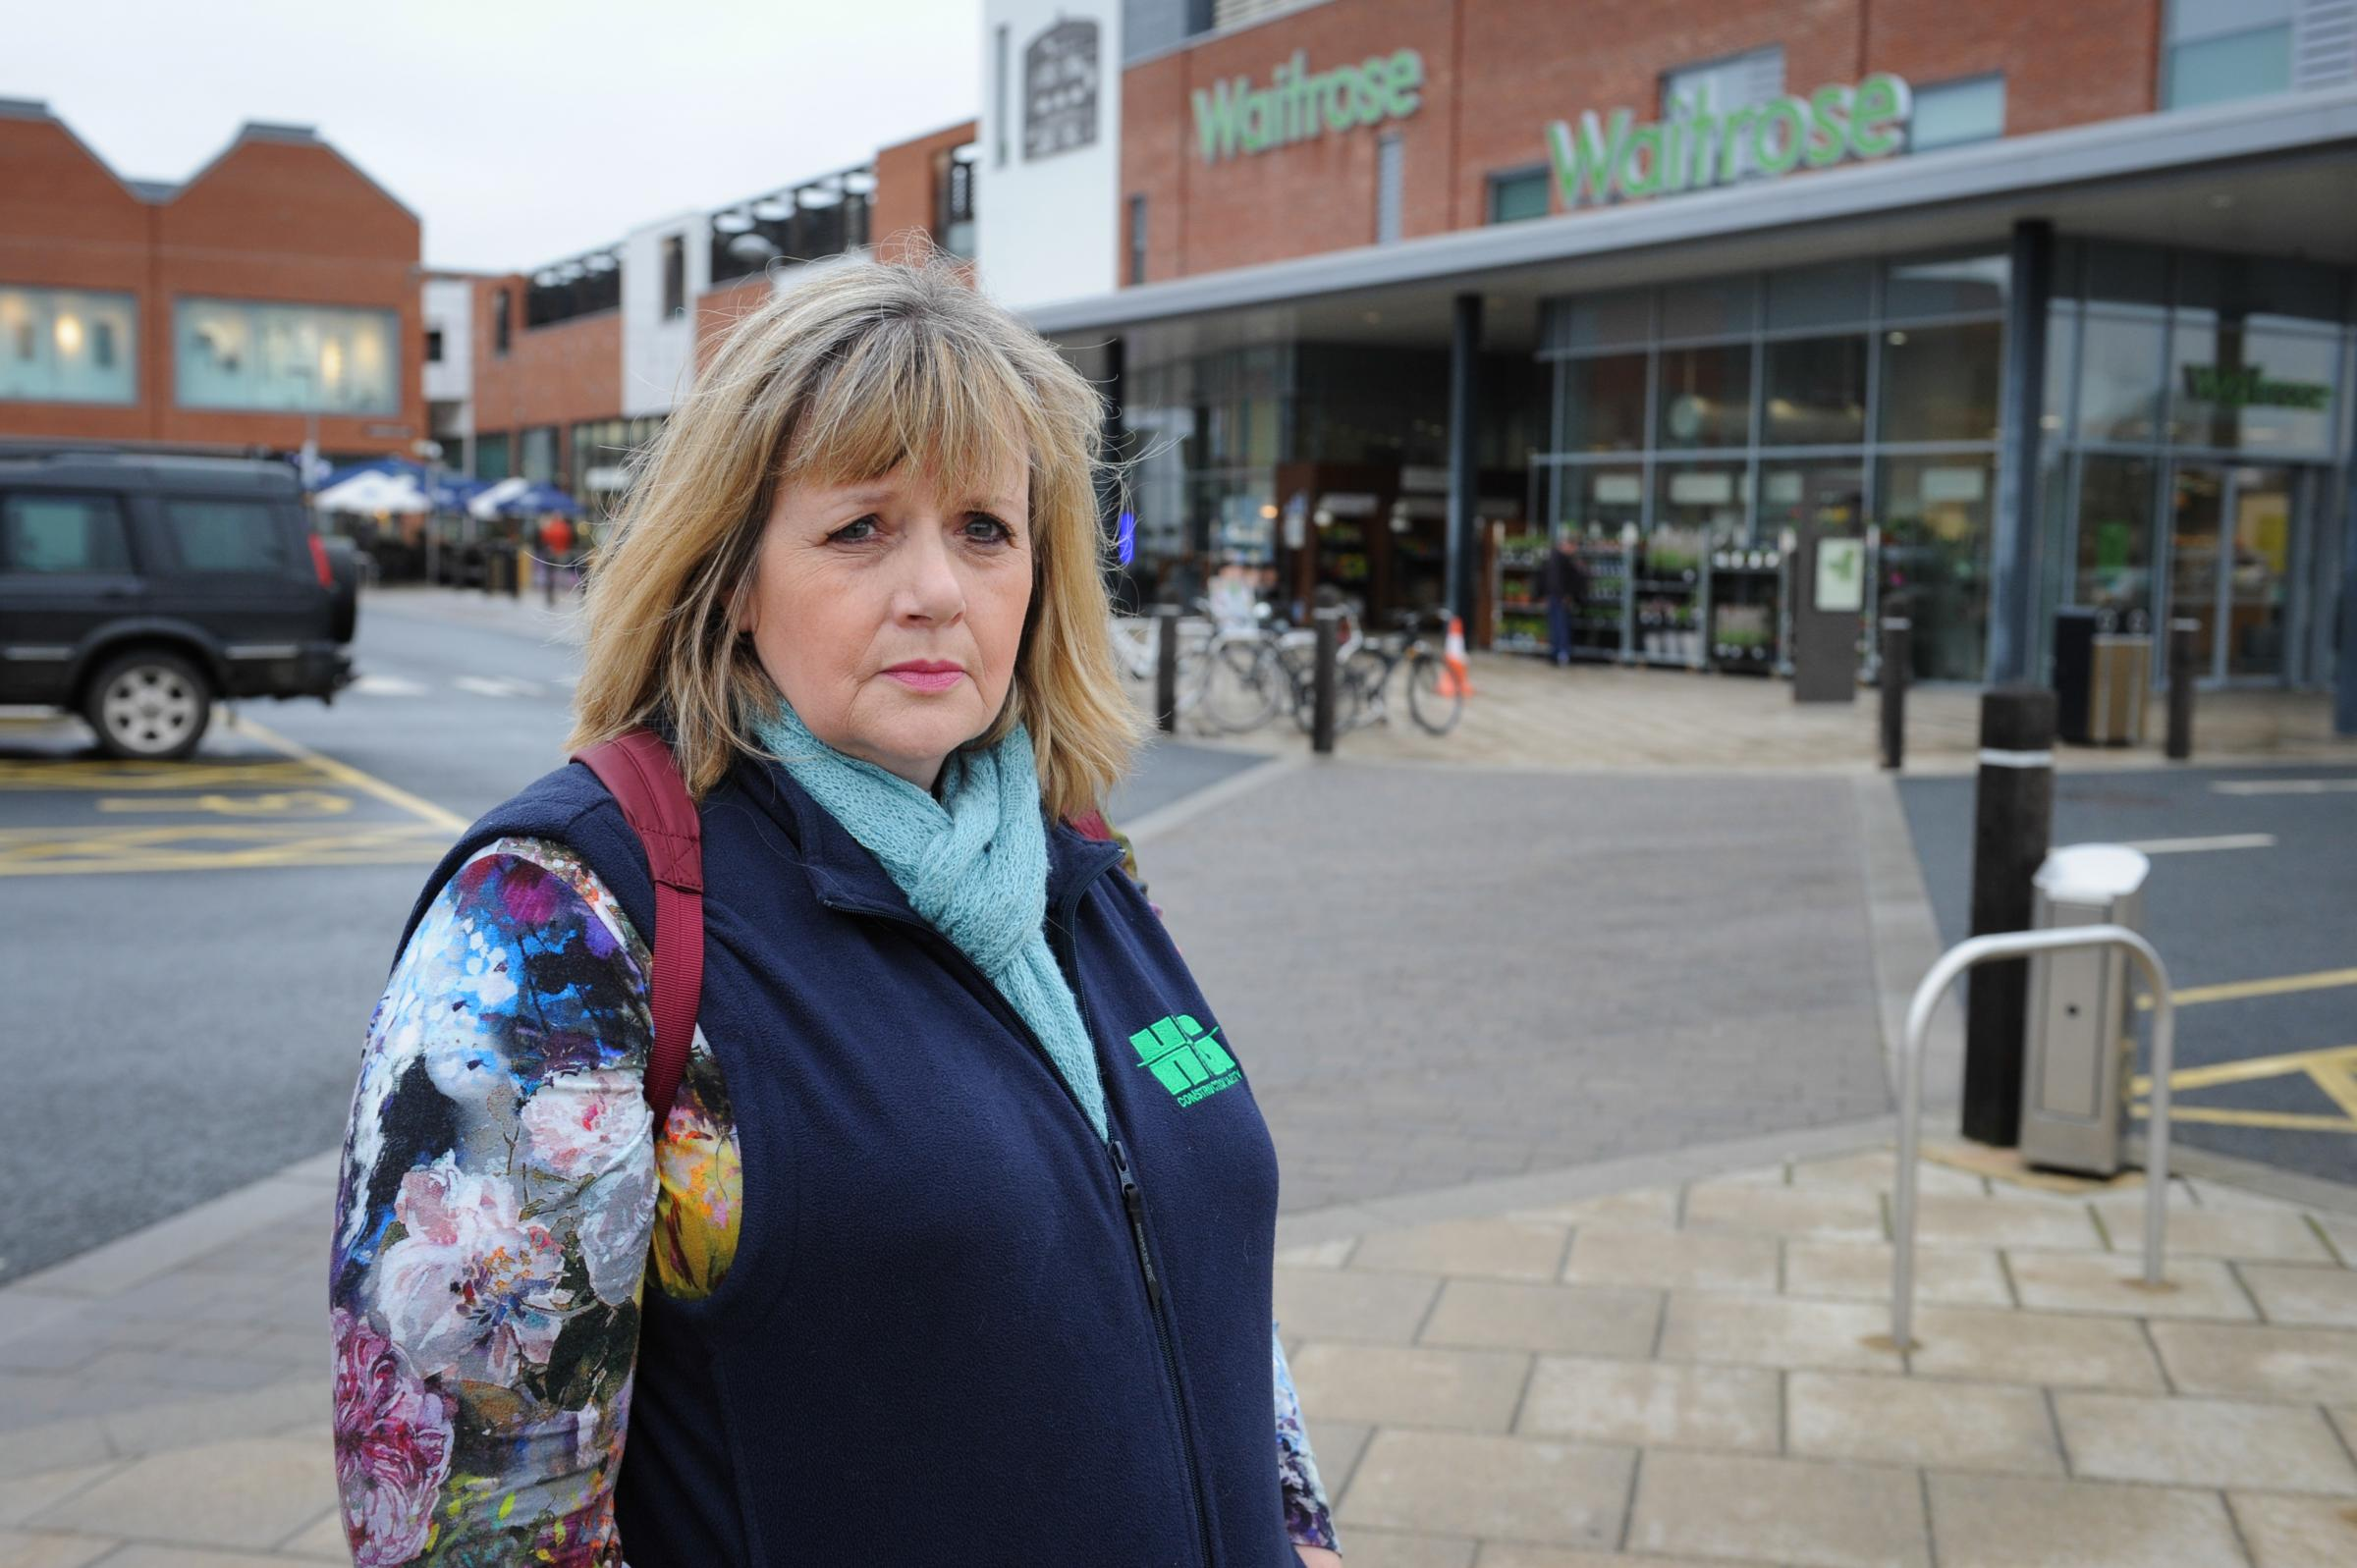 Marie-Louise Evans is concerned about the paved area outside Waitrose which looks pedestrianised but isn't. She has seen a number of near misses there. Old Market, Hereford.